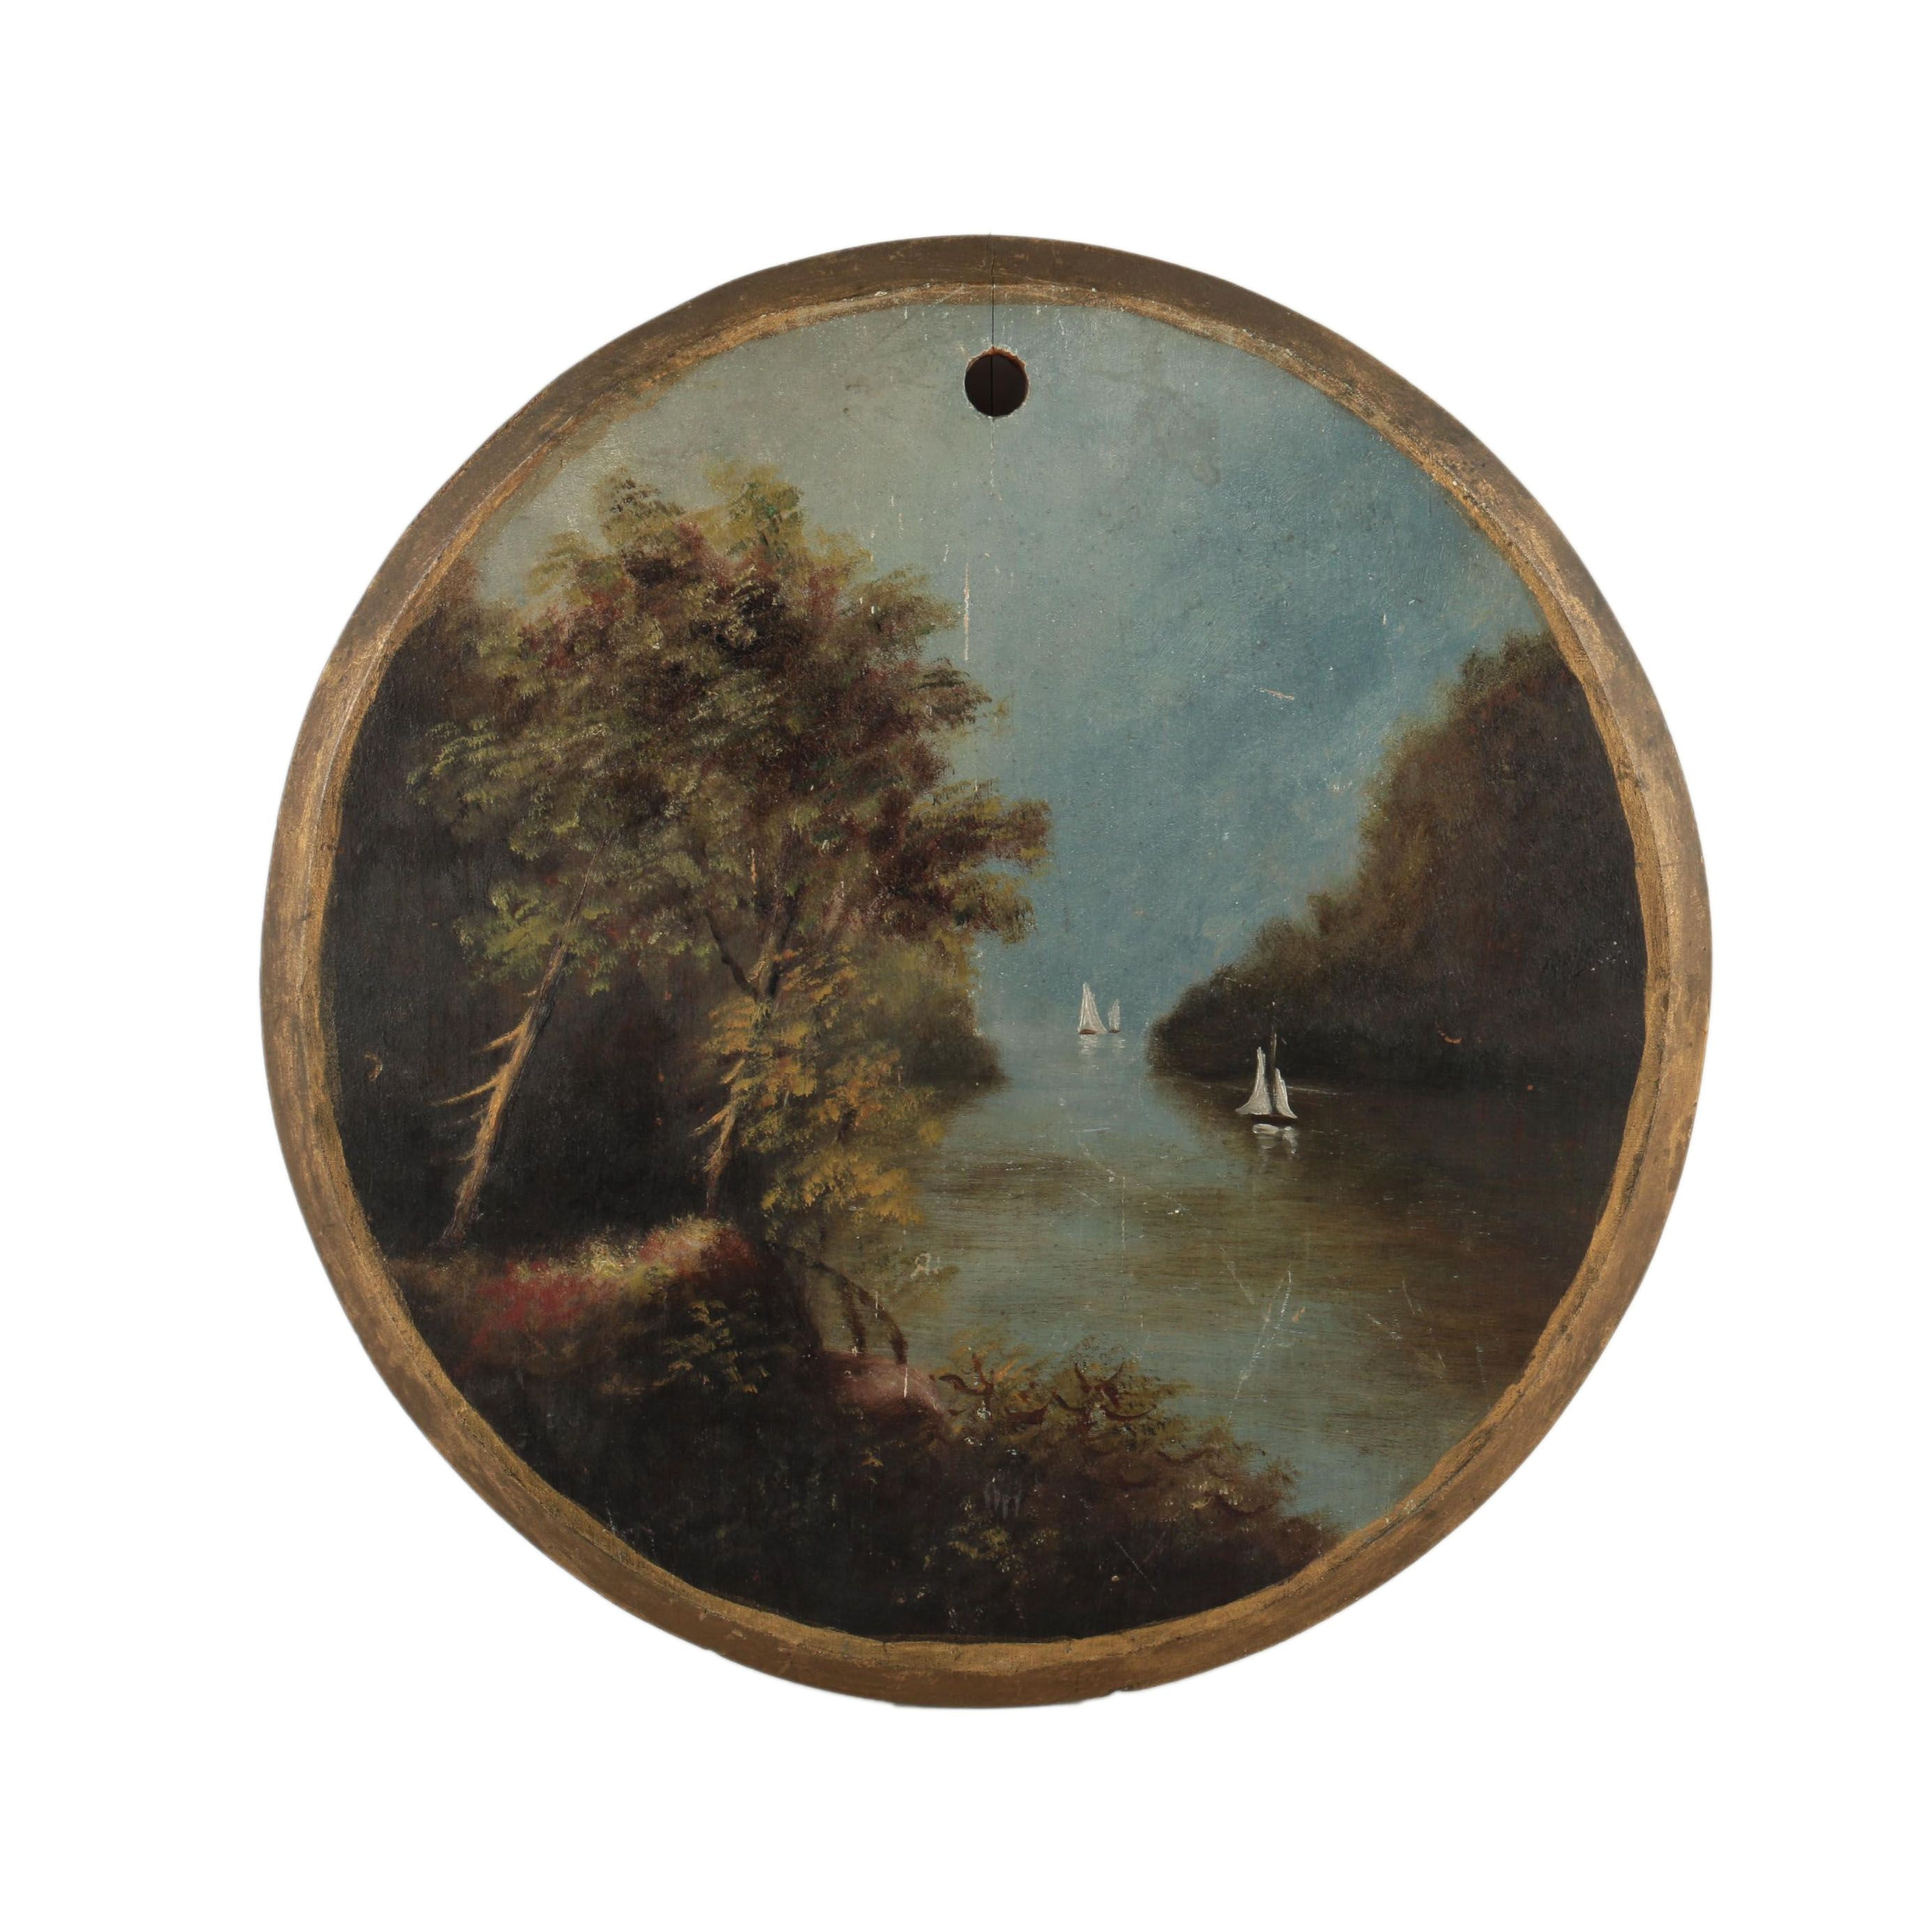 Small Oil Painting on Round Wooden Panel